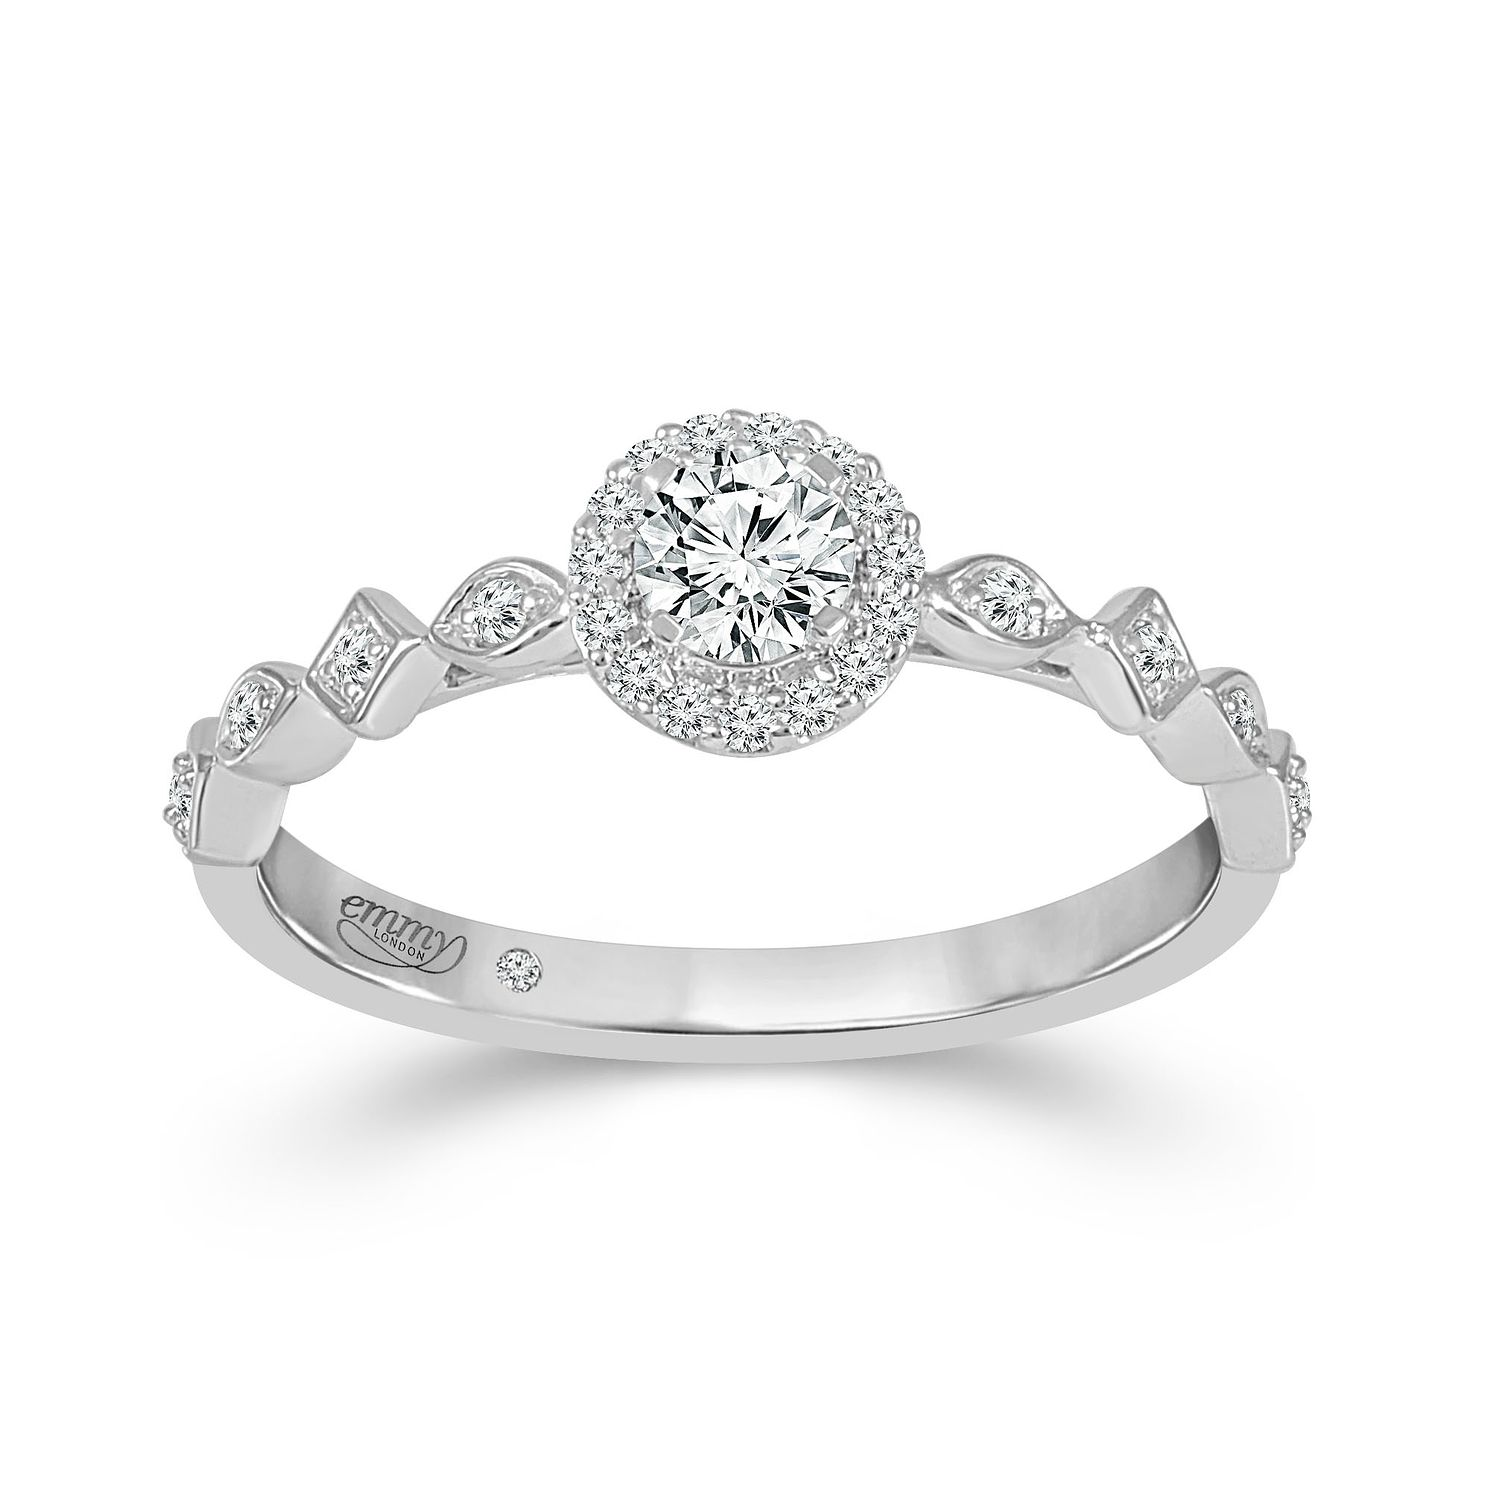 Emmy London Platinum Halo 0.33ct Total Diamond Ring - Product number 9529179